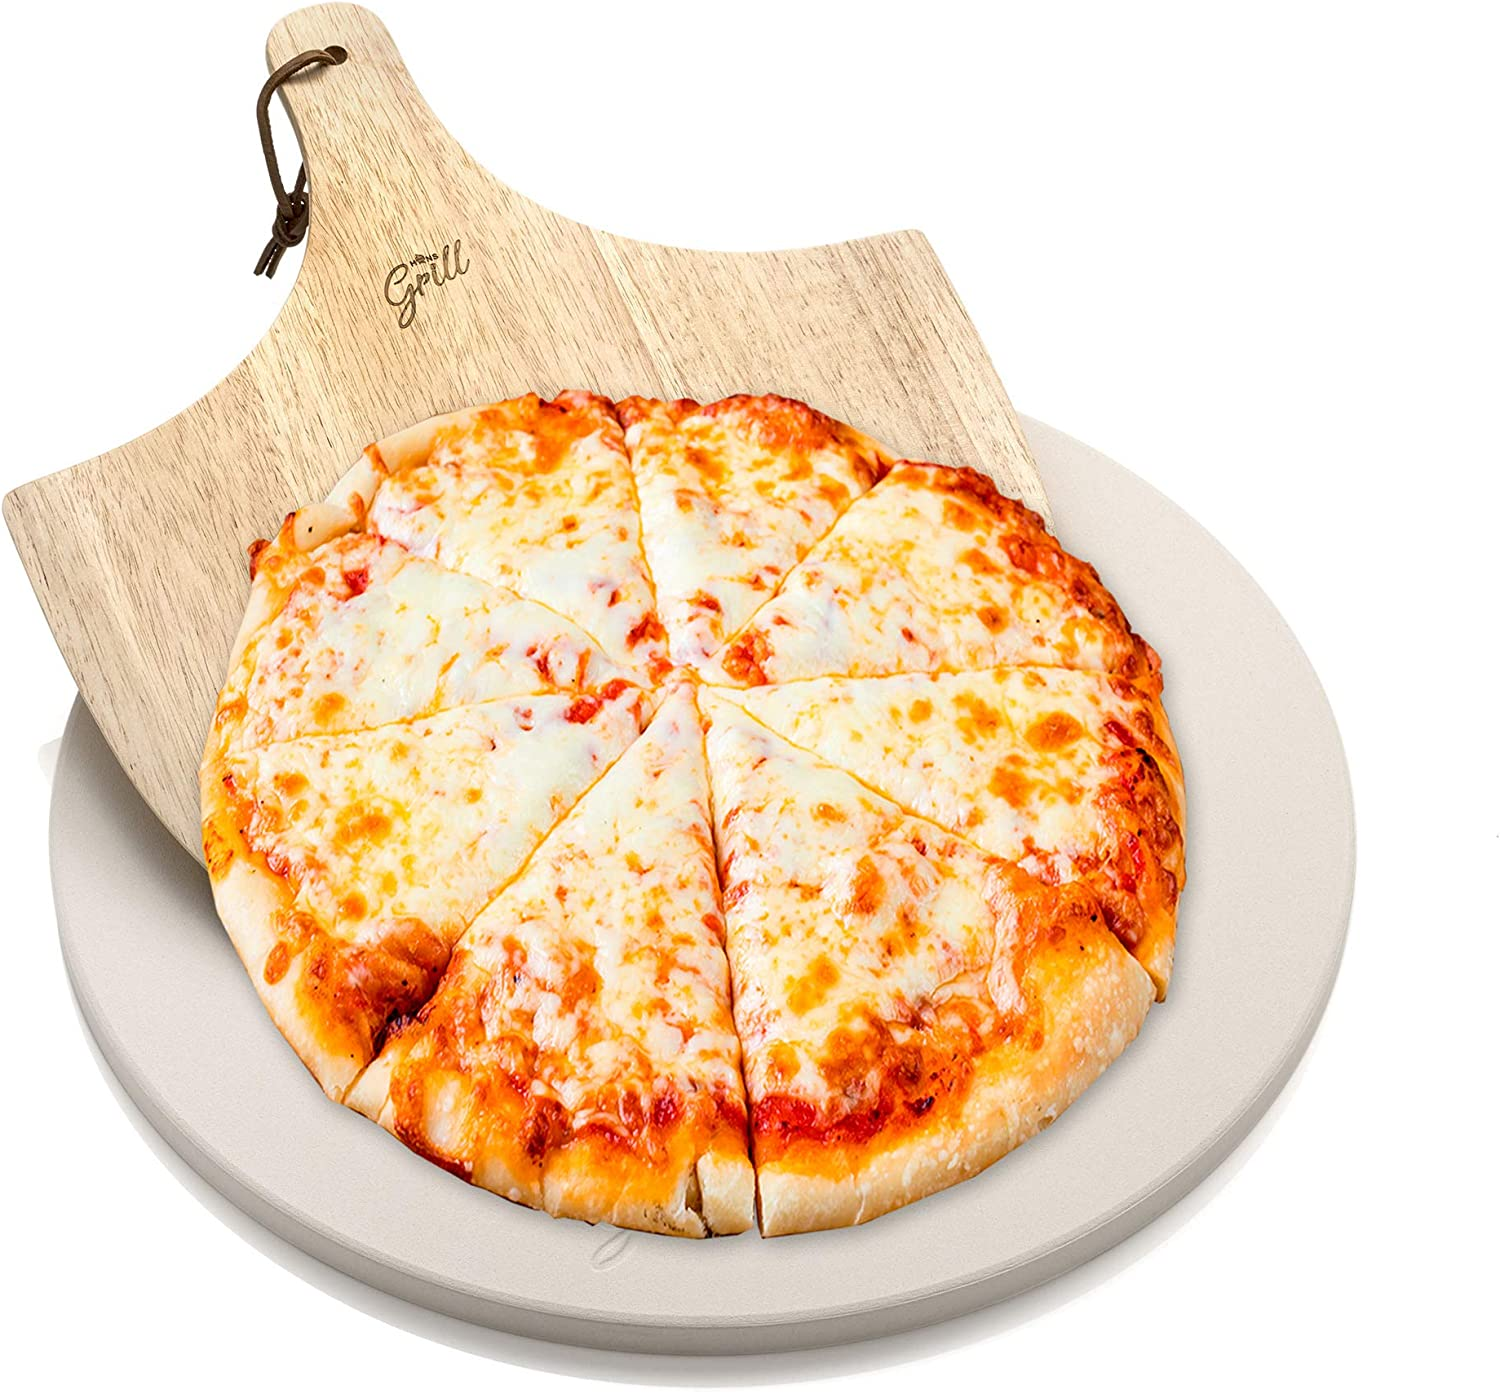 "Hans Grill Pizza Stone for Oven and Grill/BBQ Cook Pizzas in Seconds 15"" Circular Board with Free Wooden Pizza Peel X Large 15 Inches Easy Handle Baking 